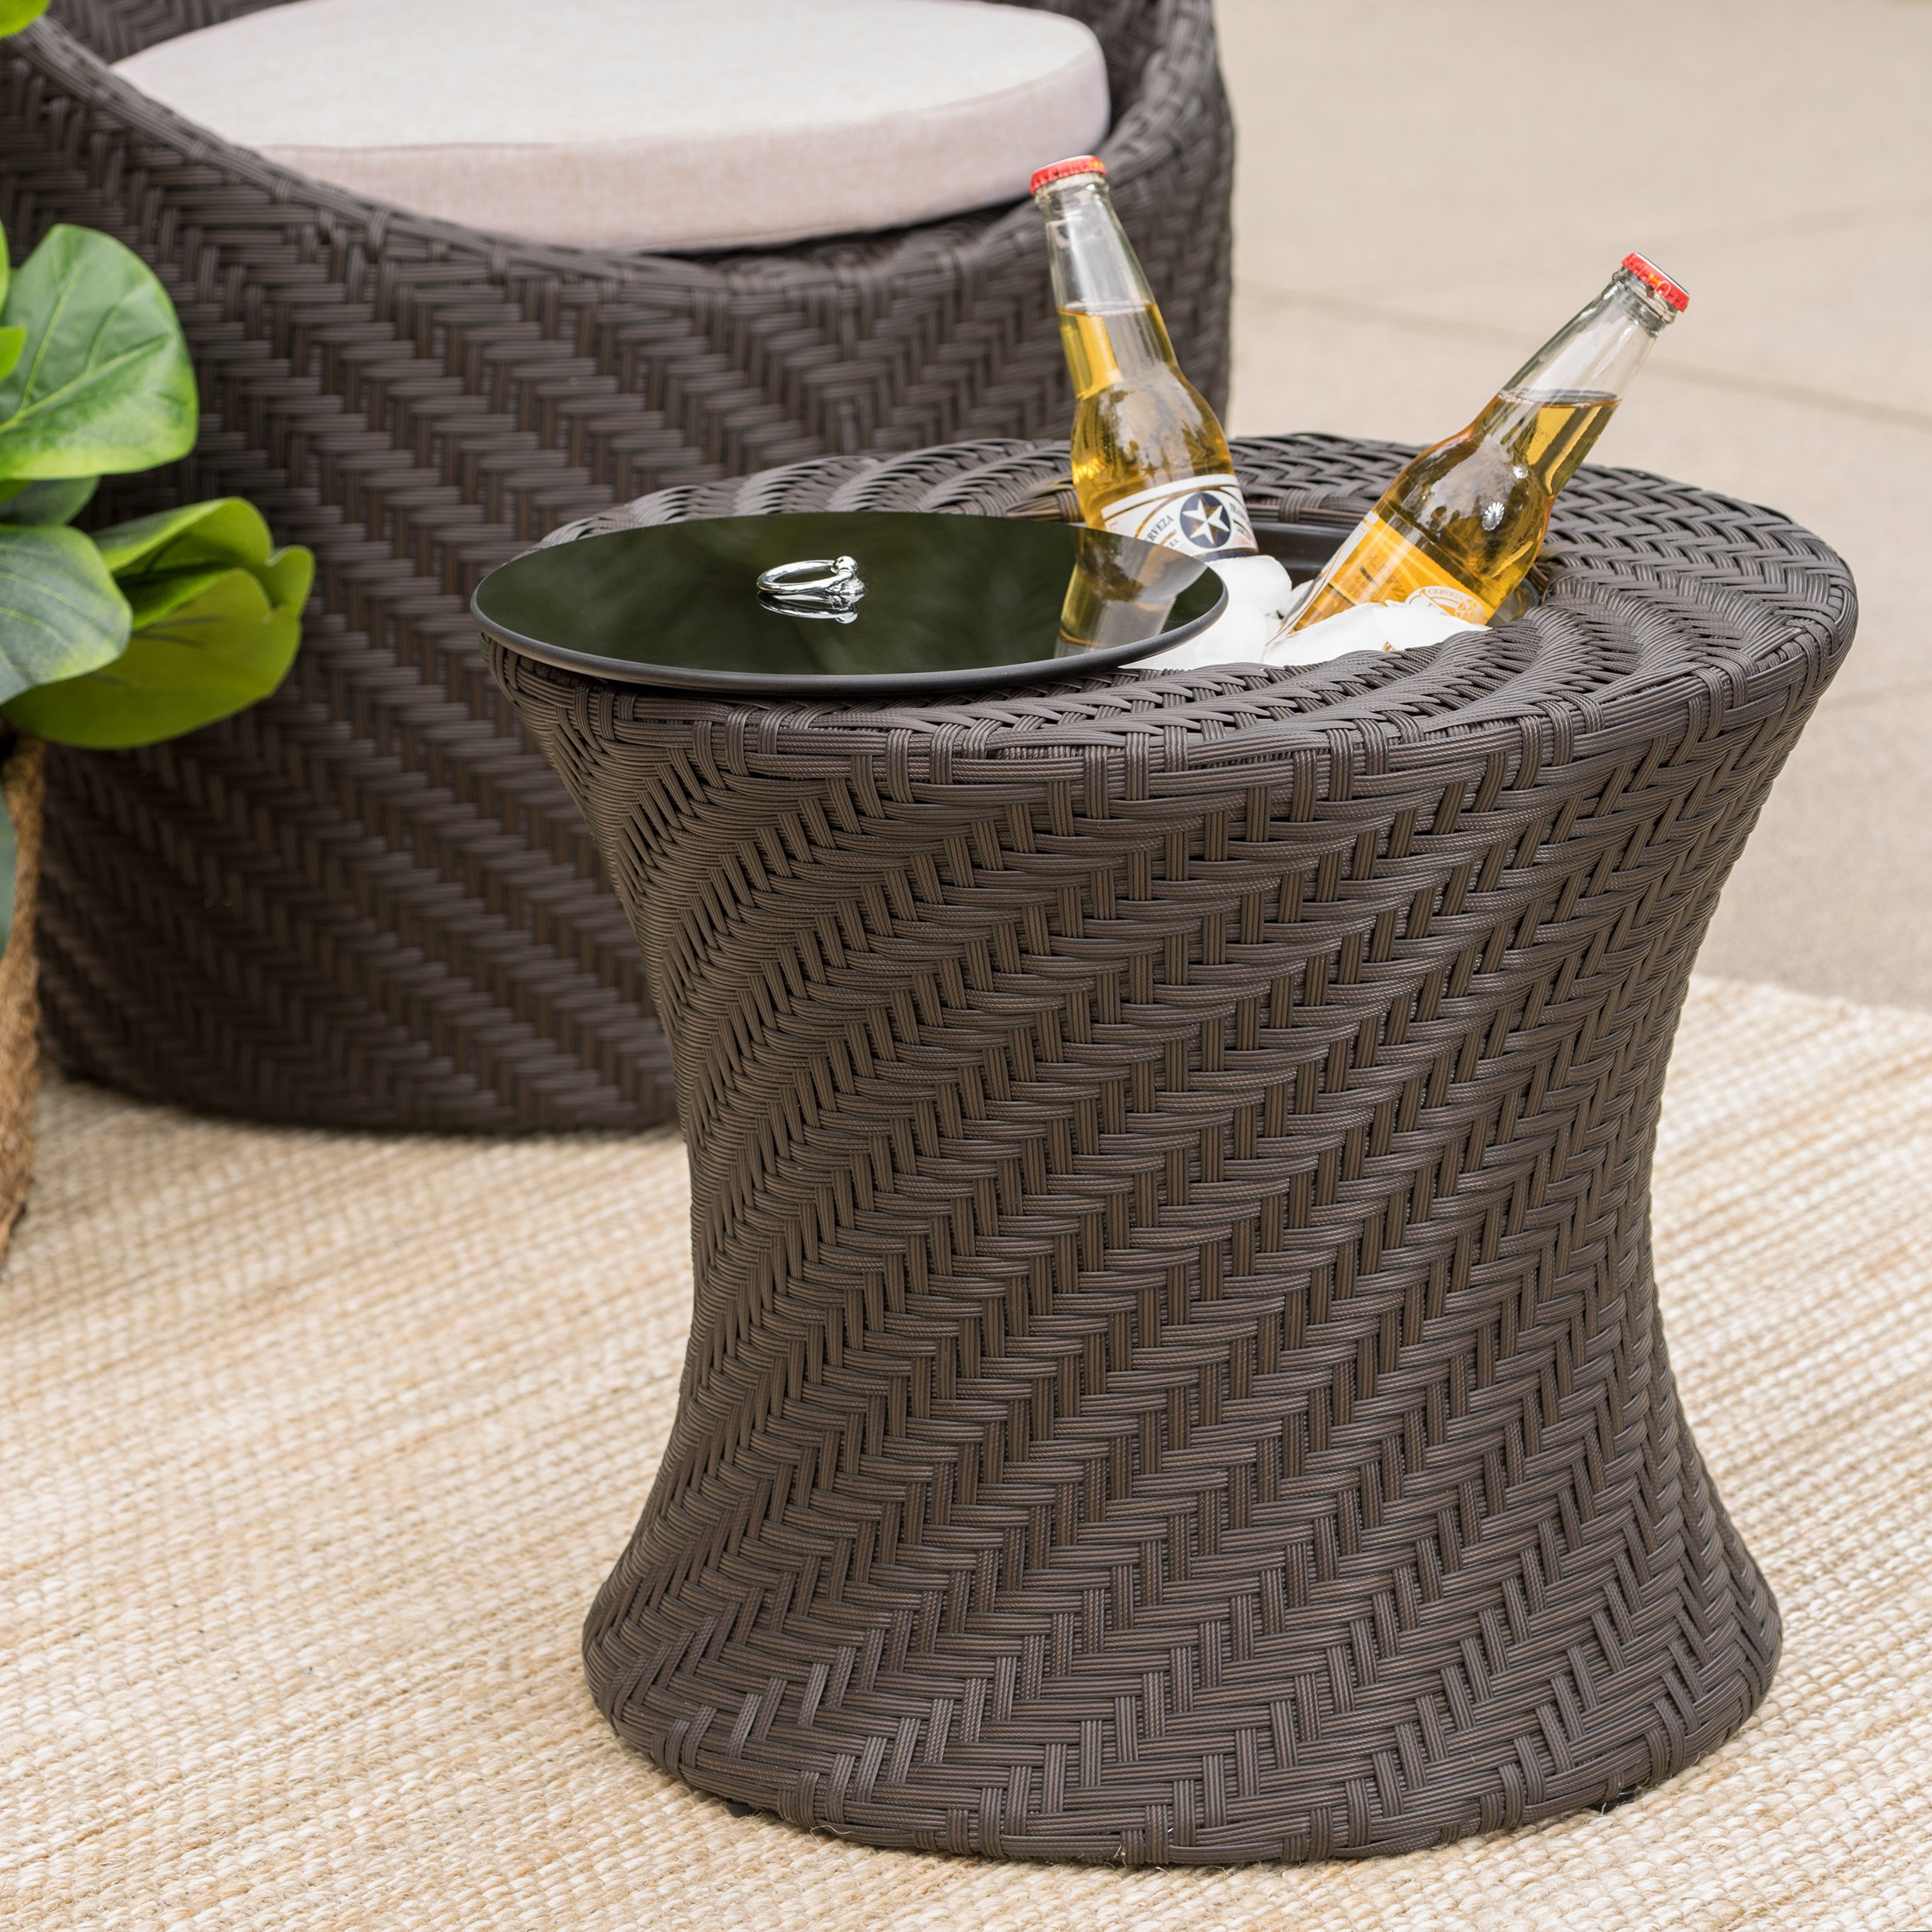 jolla outdoor wicker accent table with ice bucket christopher knight home free shipping today living room accessories ideas slender console rose gold bedside lamp rustic pedestal